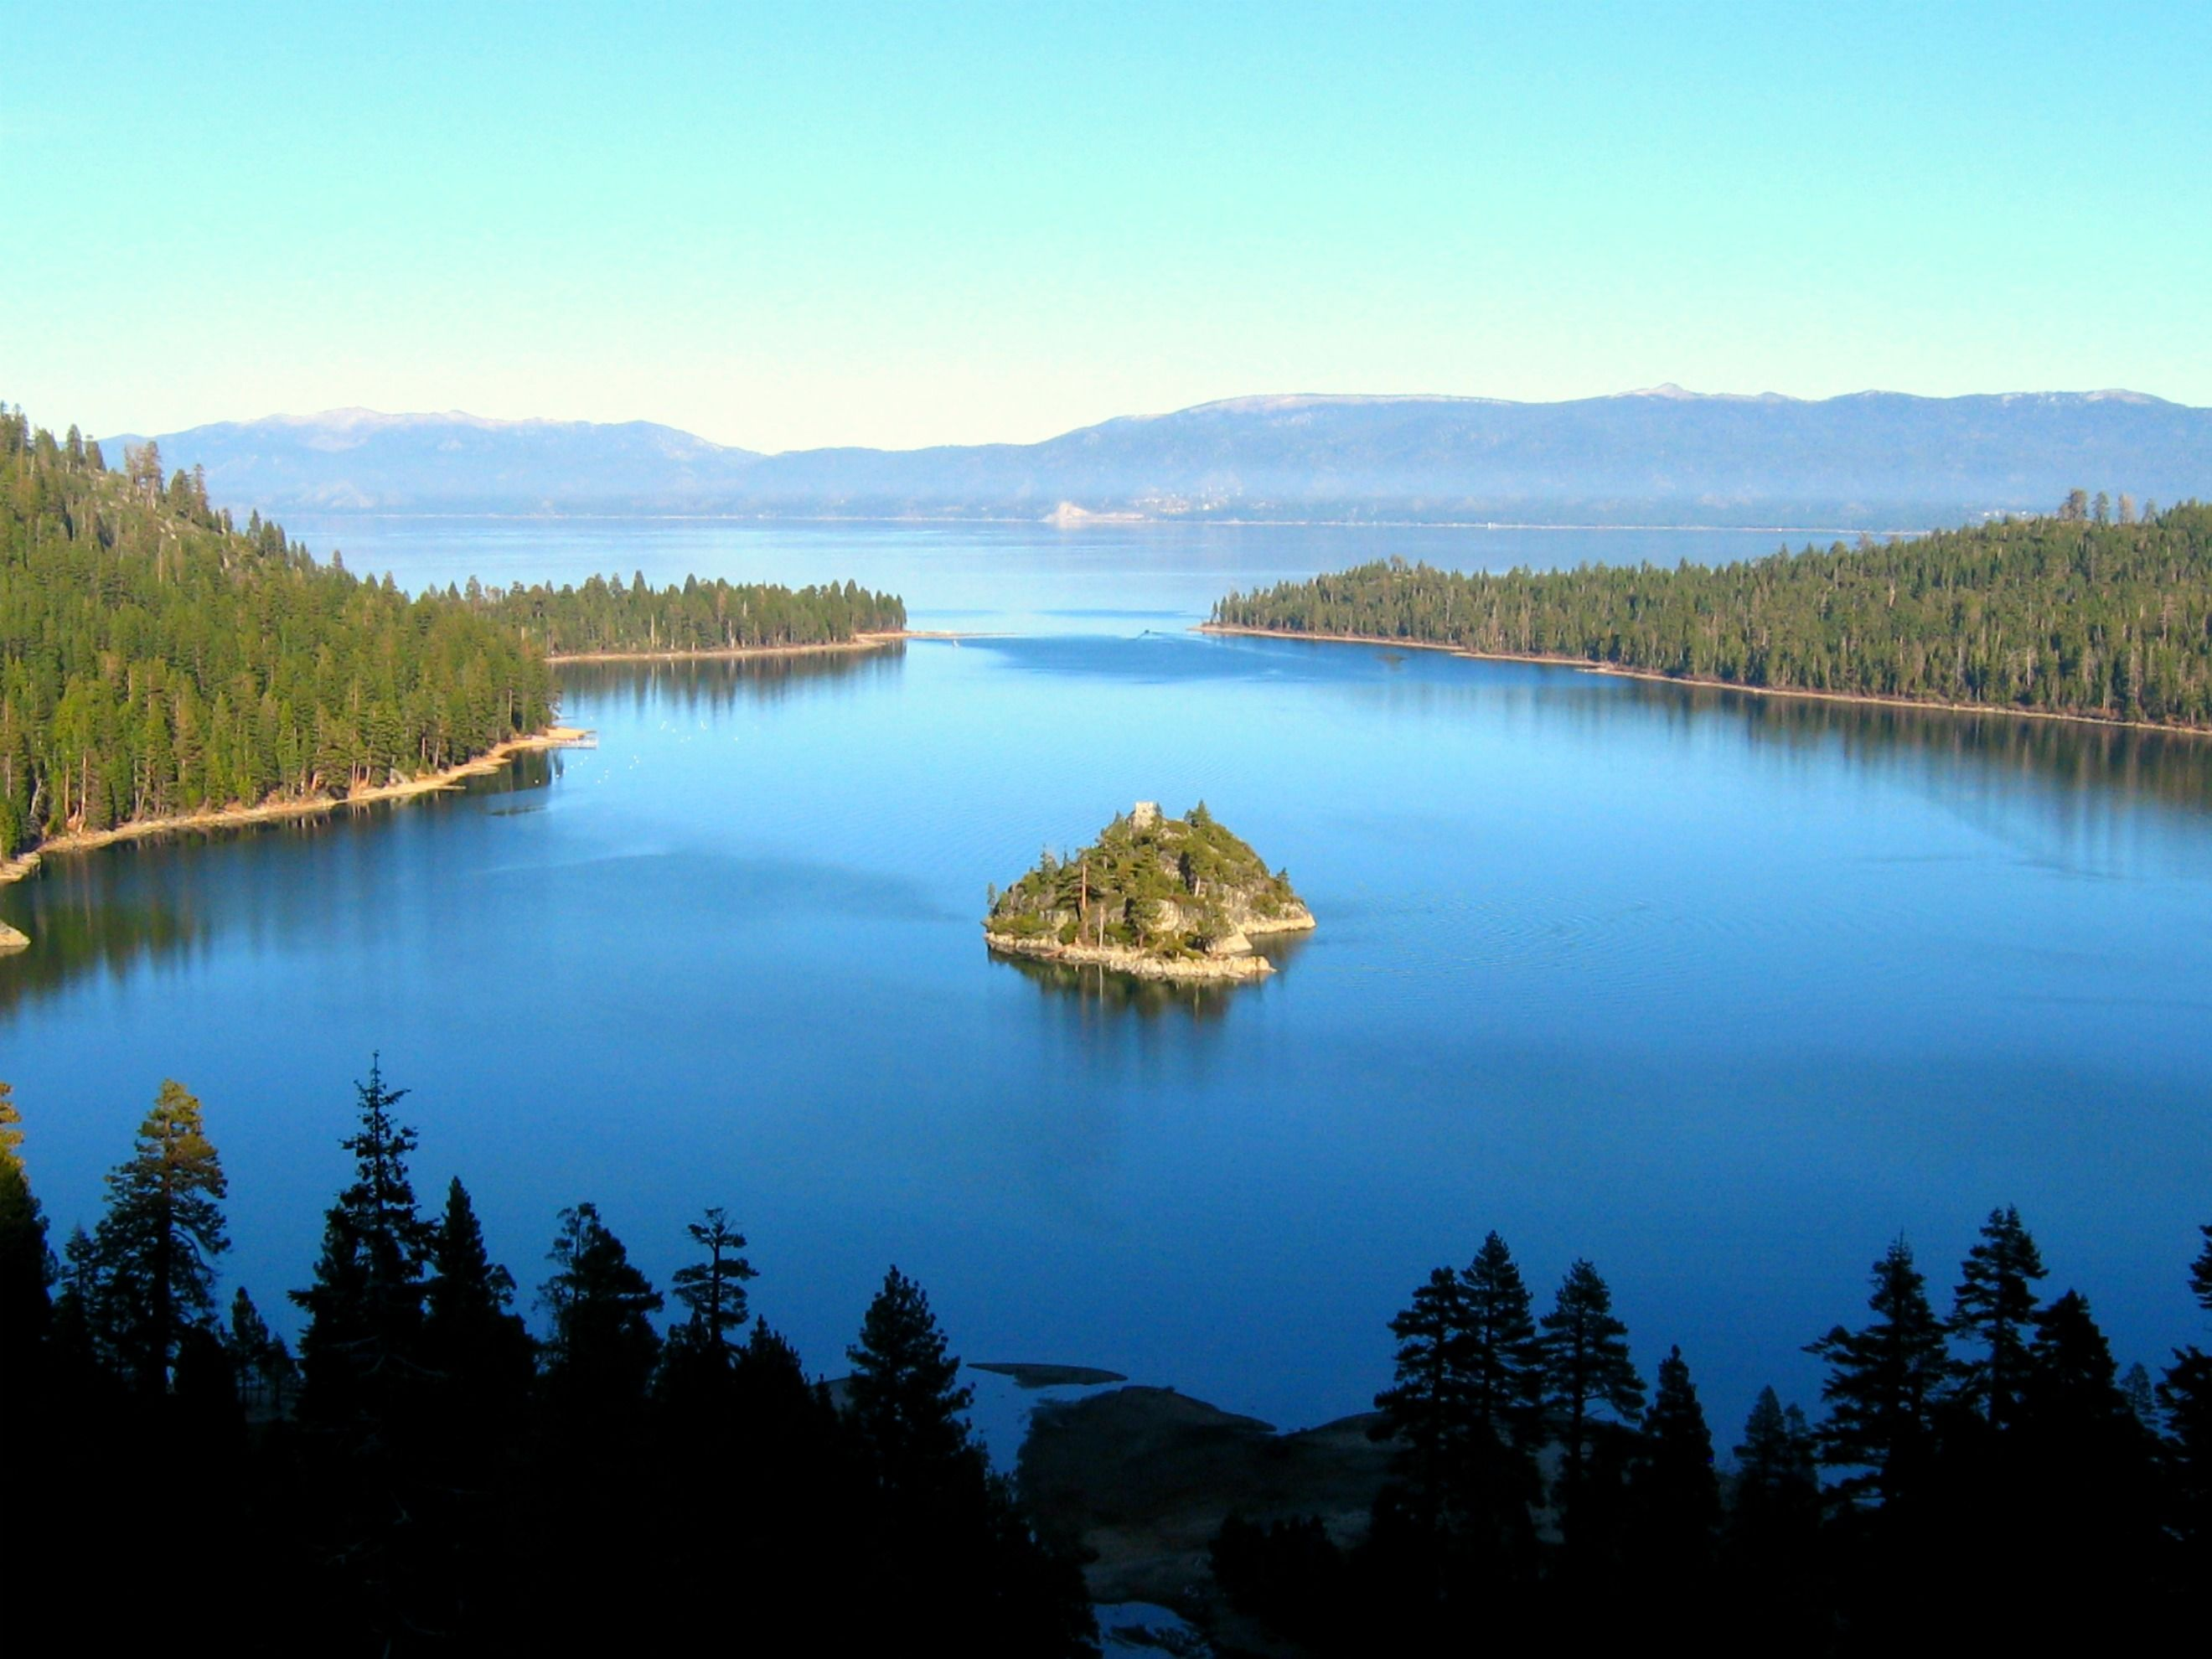 Lake tahoe sunset travel channel pinterest - Emerald Bay In Lake Tahoe Had Our Honeymoon Here And It Is Truly One Of